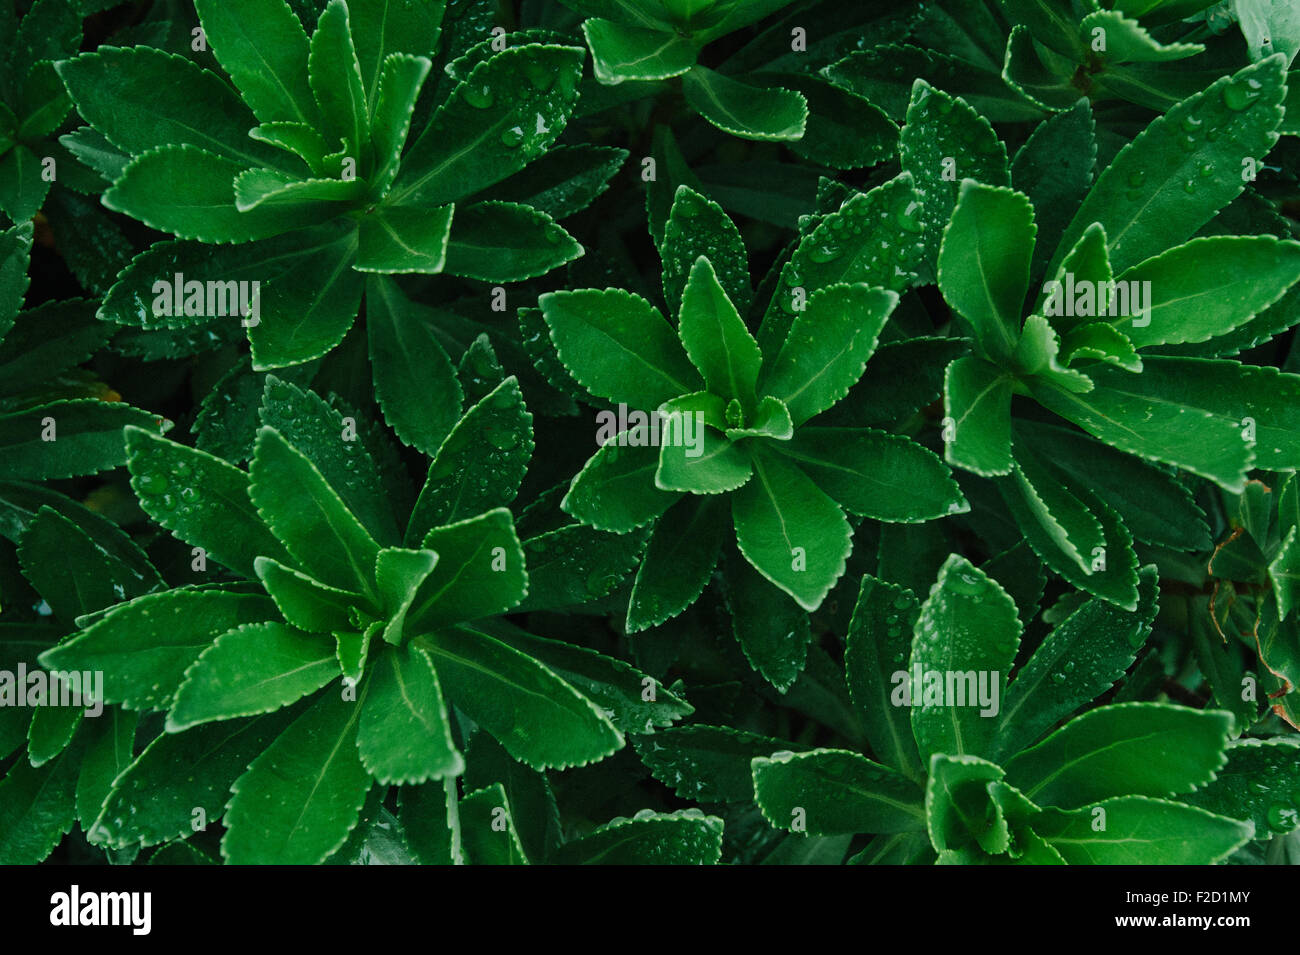 Plante verte avec des feuilles humides, Close up Photo Stock